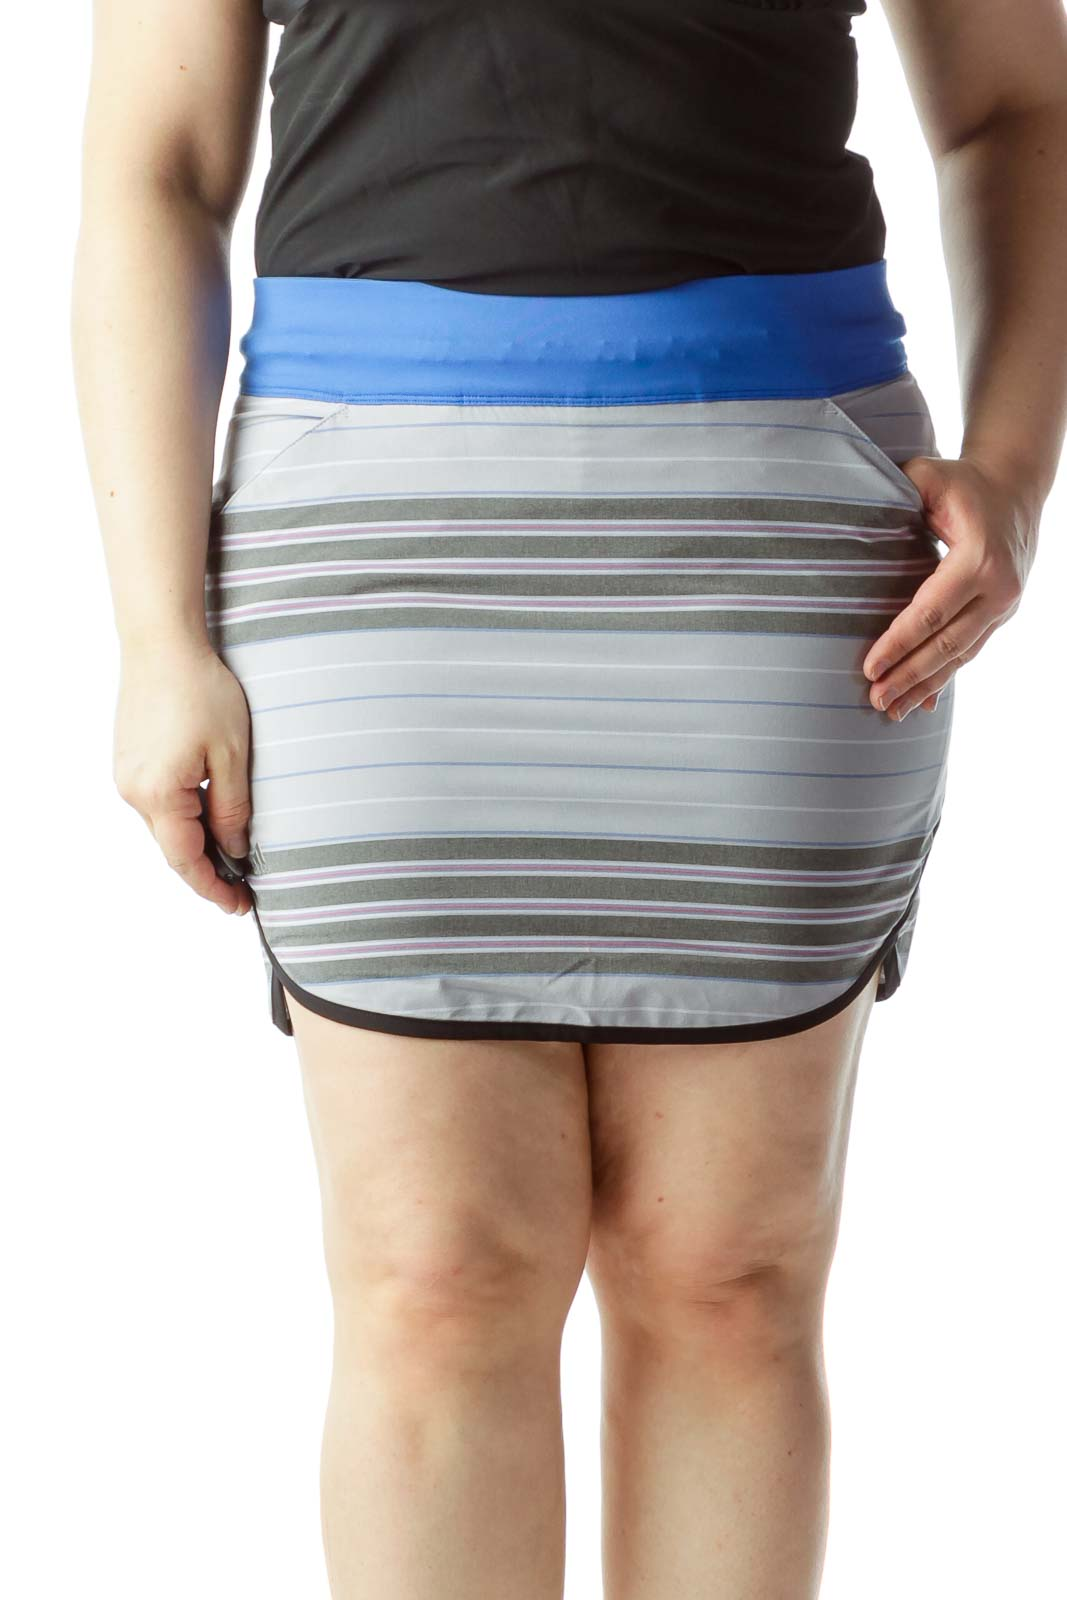 Multicolored Striped Sports Skirt with Under Shorts